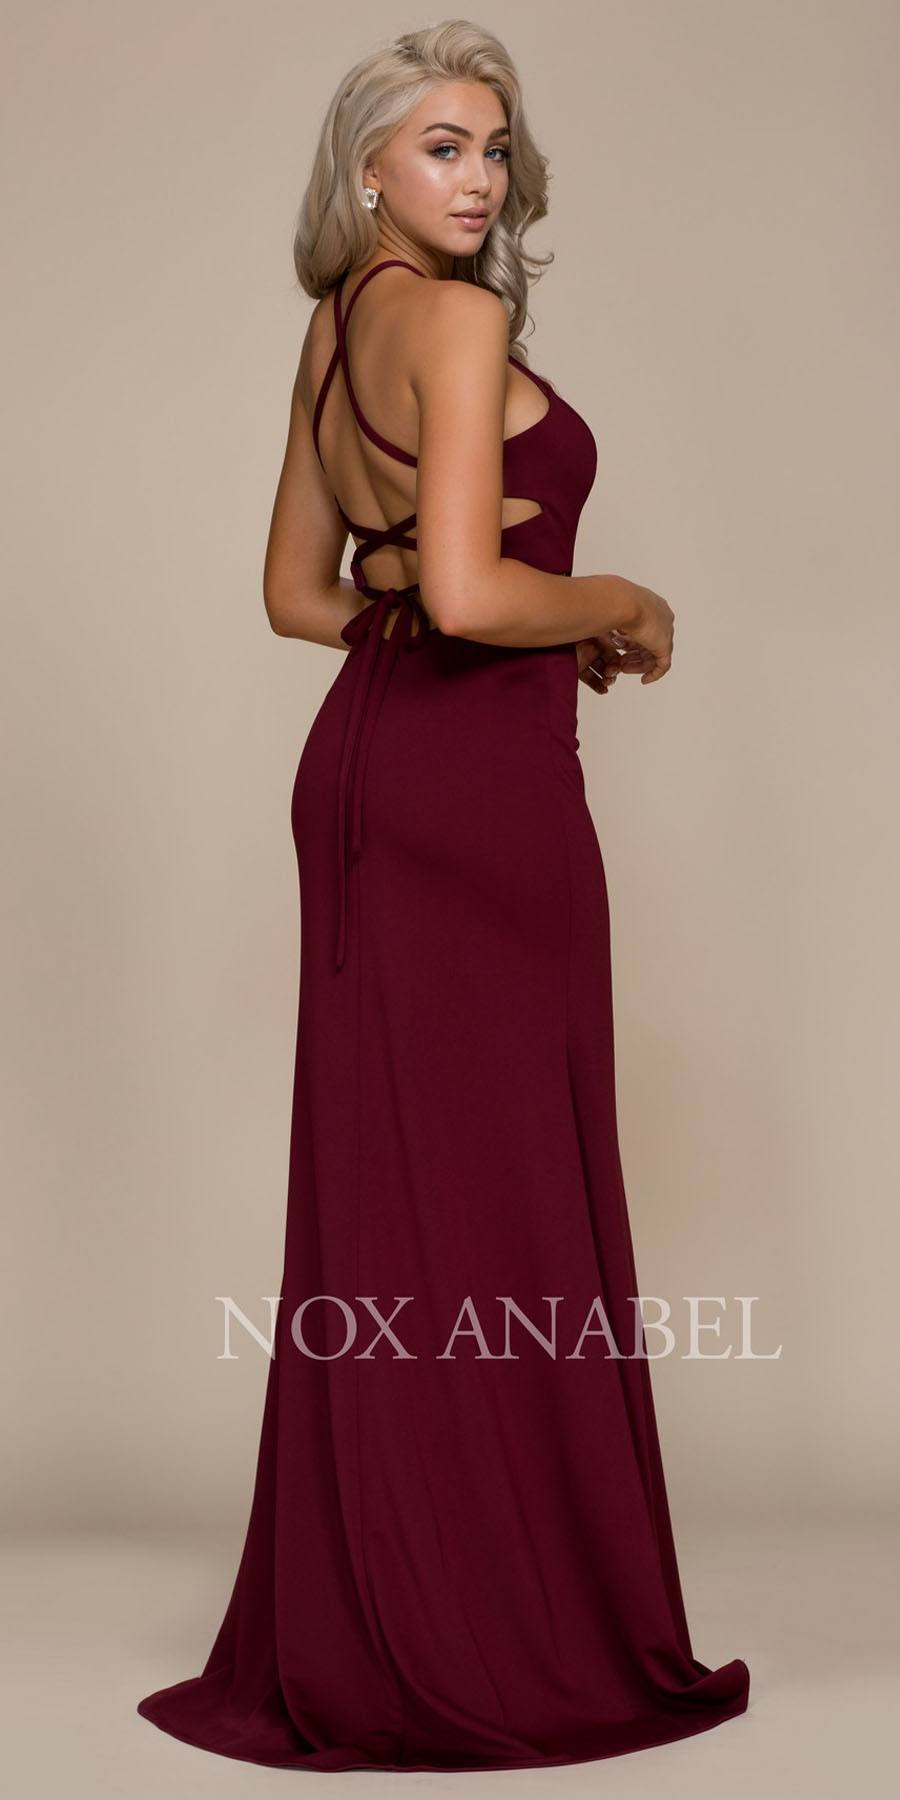 16a9bcd36be Nox Anabel C026 Burgundy Halter Cut Out Long Prom Dress Strappy Back ...